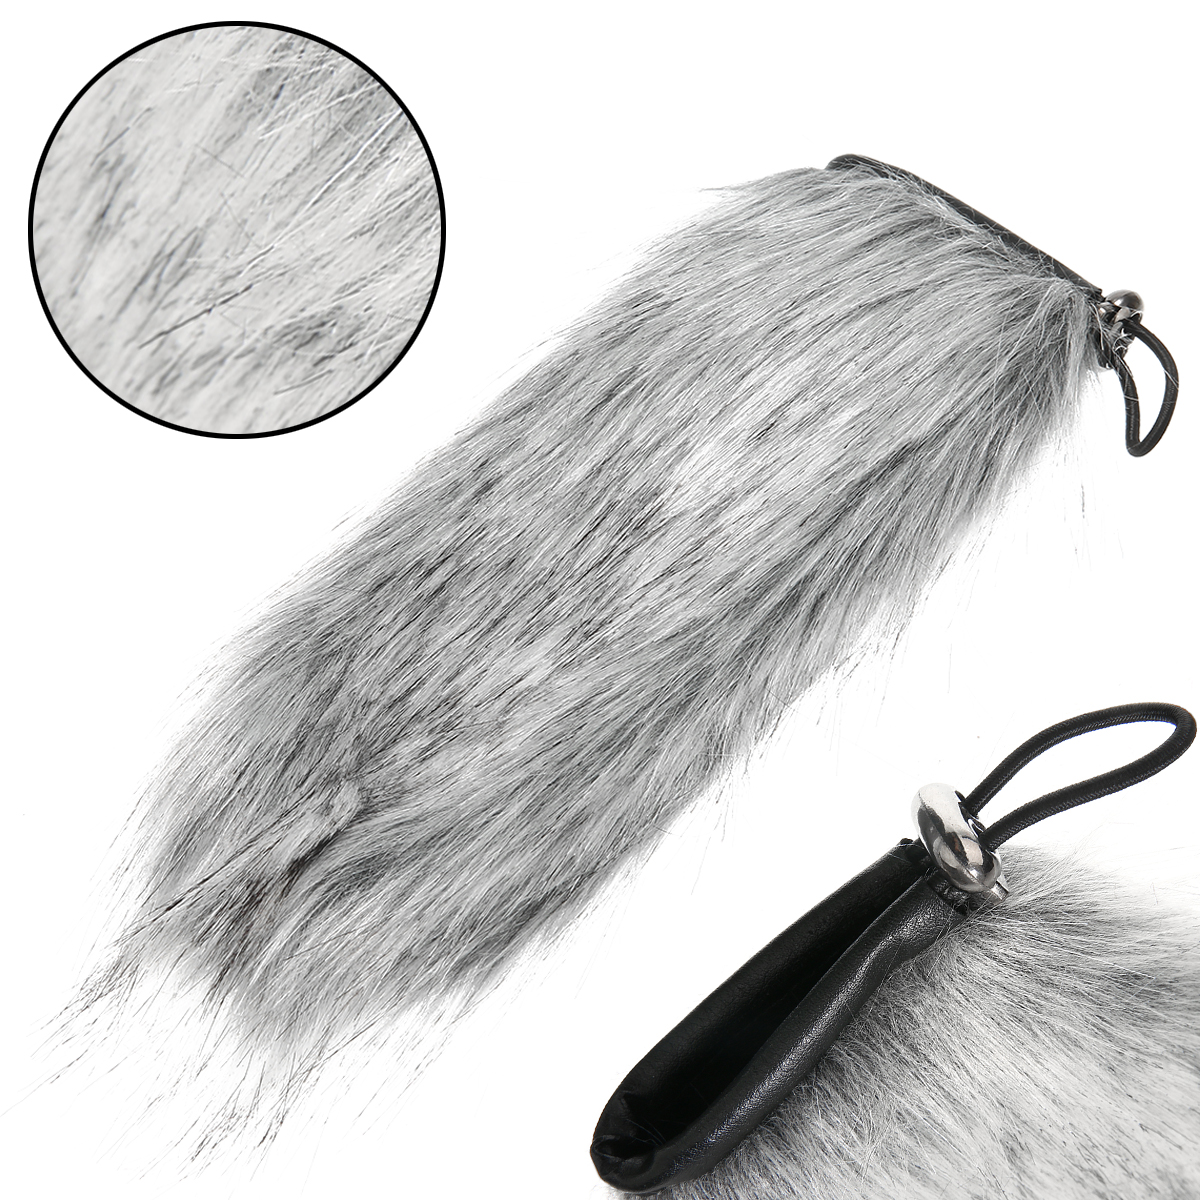 22cm Universal Outdoor Microphone Furry Windscreen Fur Windshield Wind Muff Cover For Audio Microphone